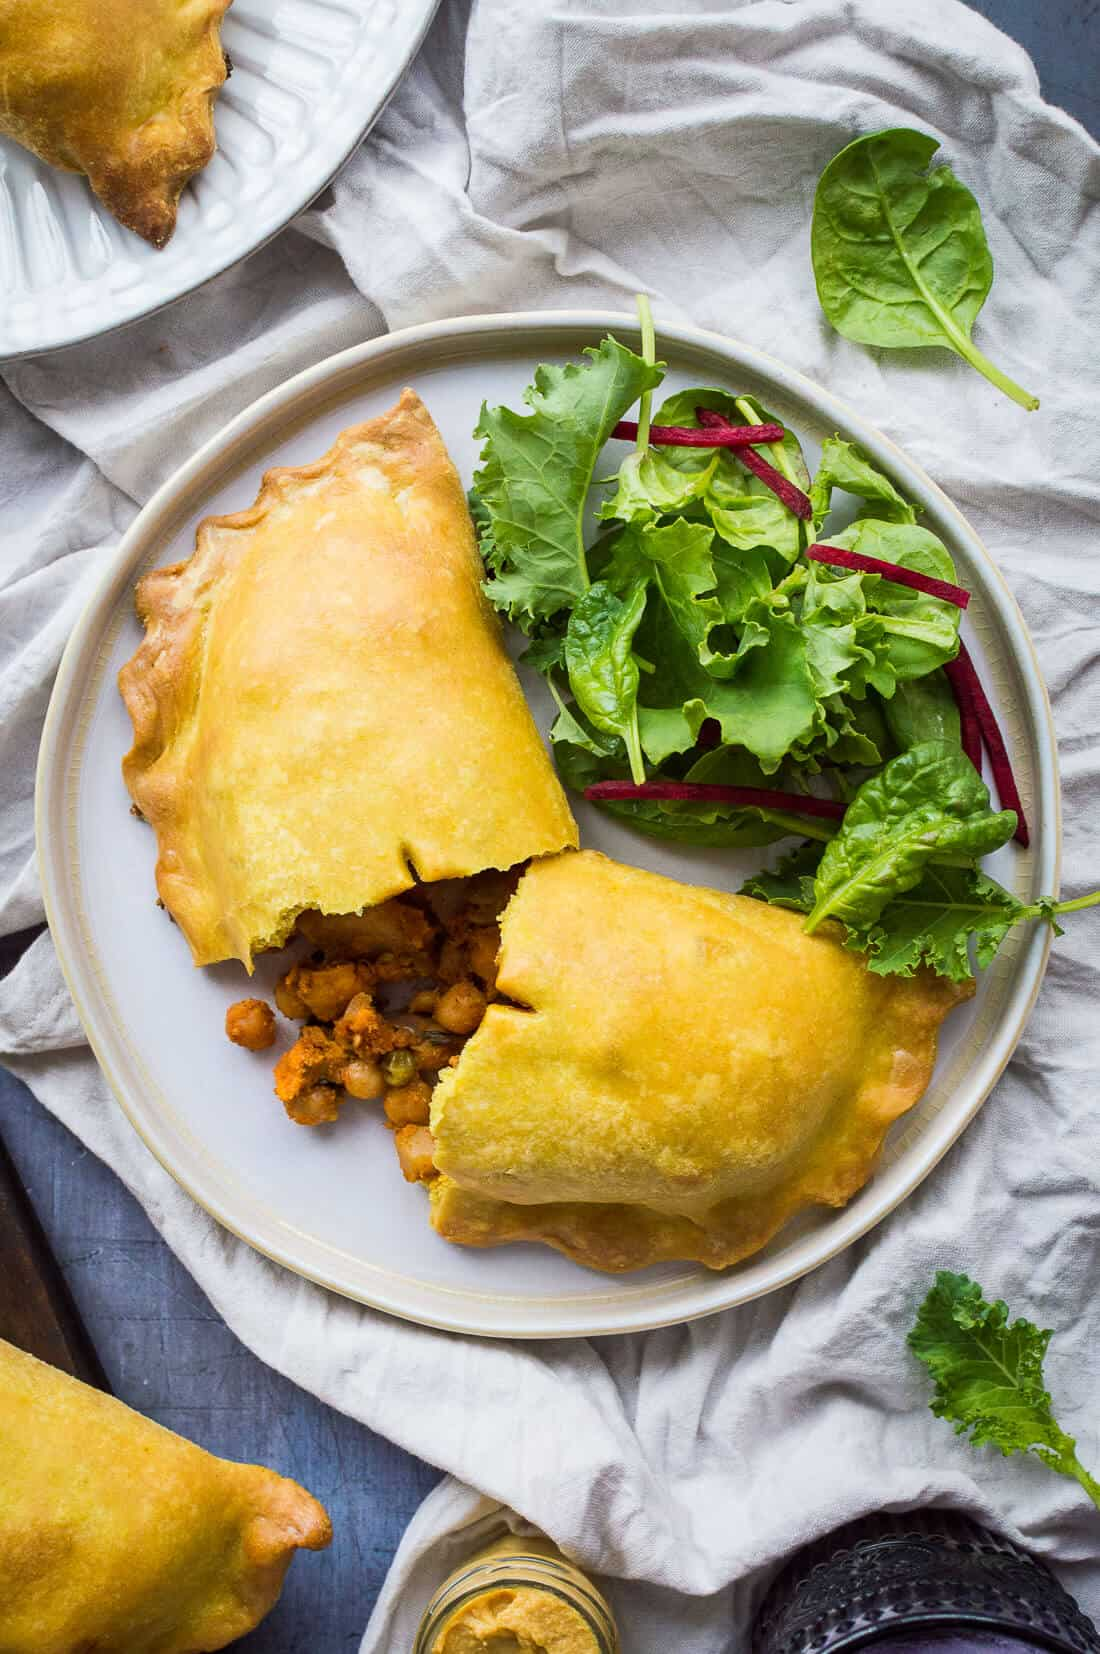 A vegan curried vegetable and chickpea pasty on a white plate with salad